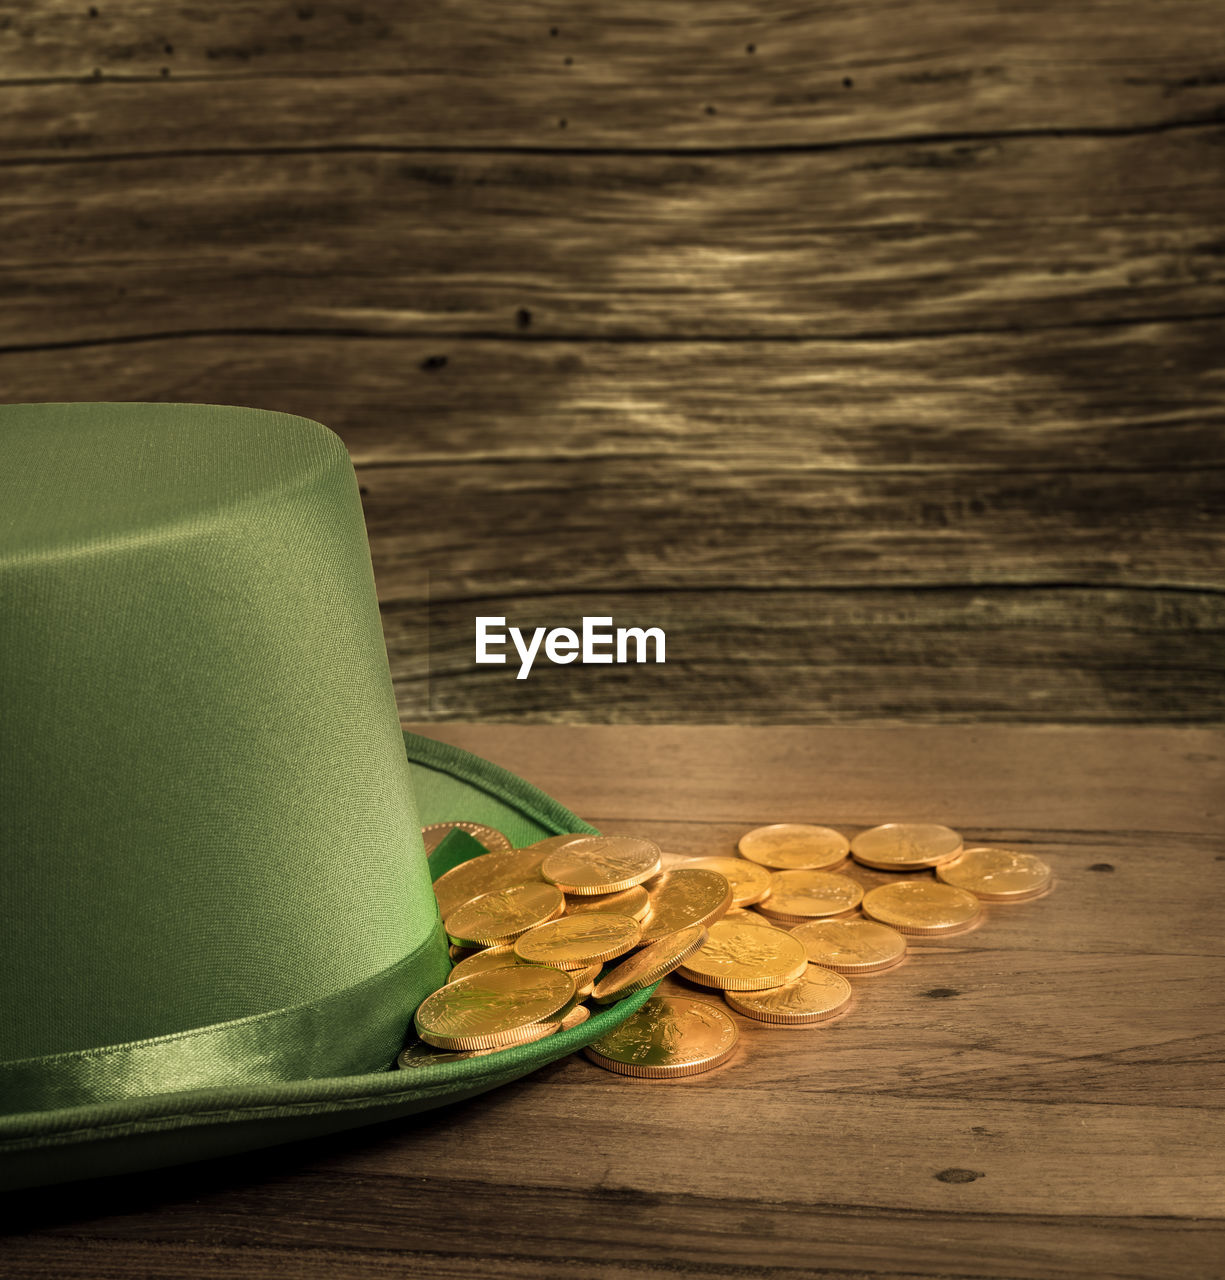 Close-up of hat and coins on wooden table